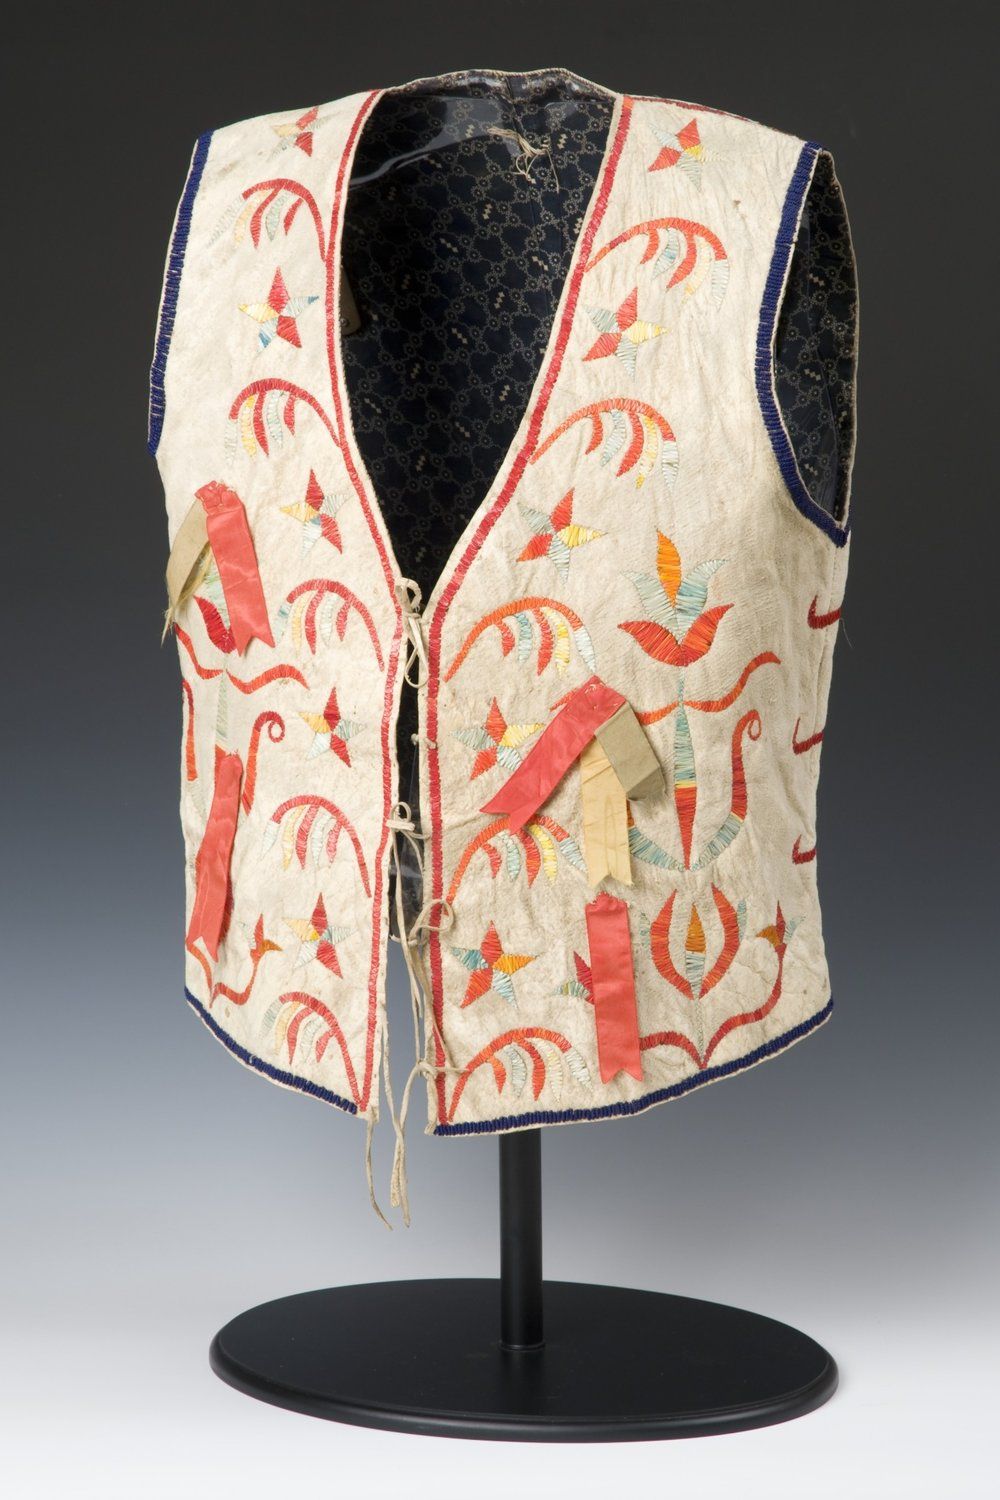 Dakota (Eastern Sioux), vest, about 1880. Native-tanned hide, cotton fabric, porcupine quills, silk ribbons, glass beads, dye, ink, sinew, and thread, 22 1/16 × 13 3/8 in. Hood Museum of Art, Dartmouth College: Gift of Stephen A. Lister, Class of 1963; 2008.82.